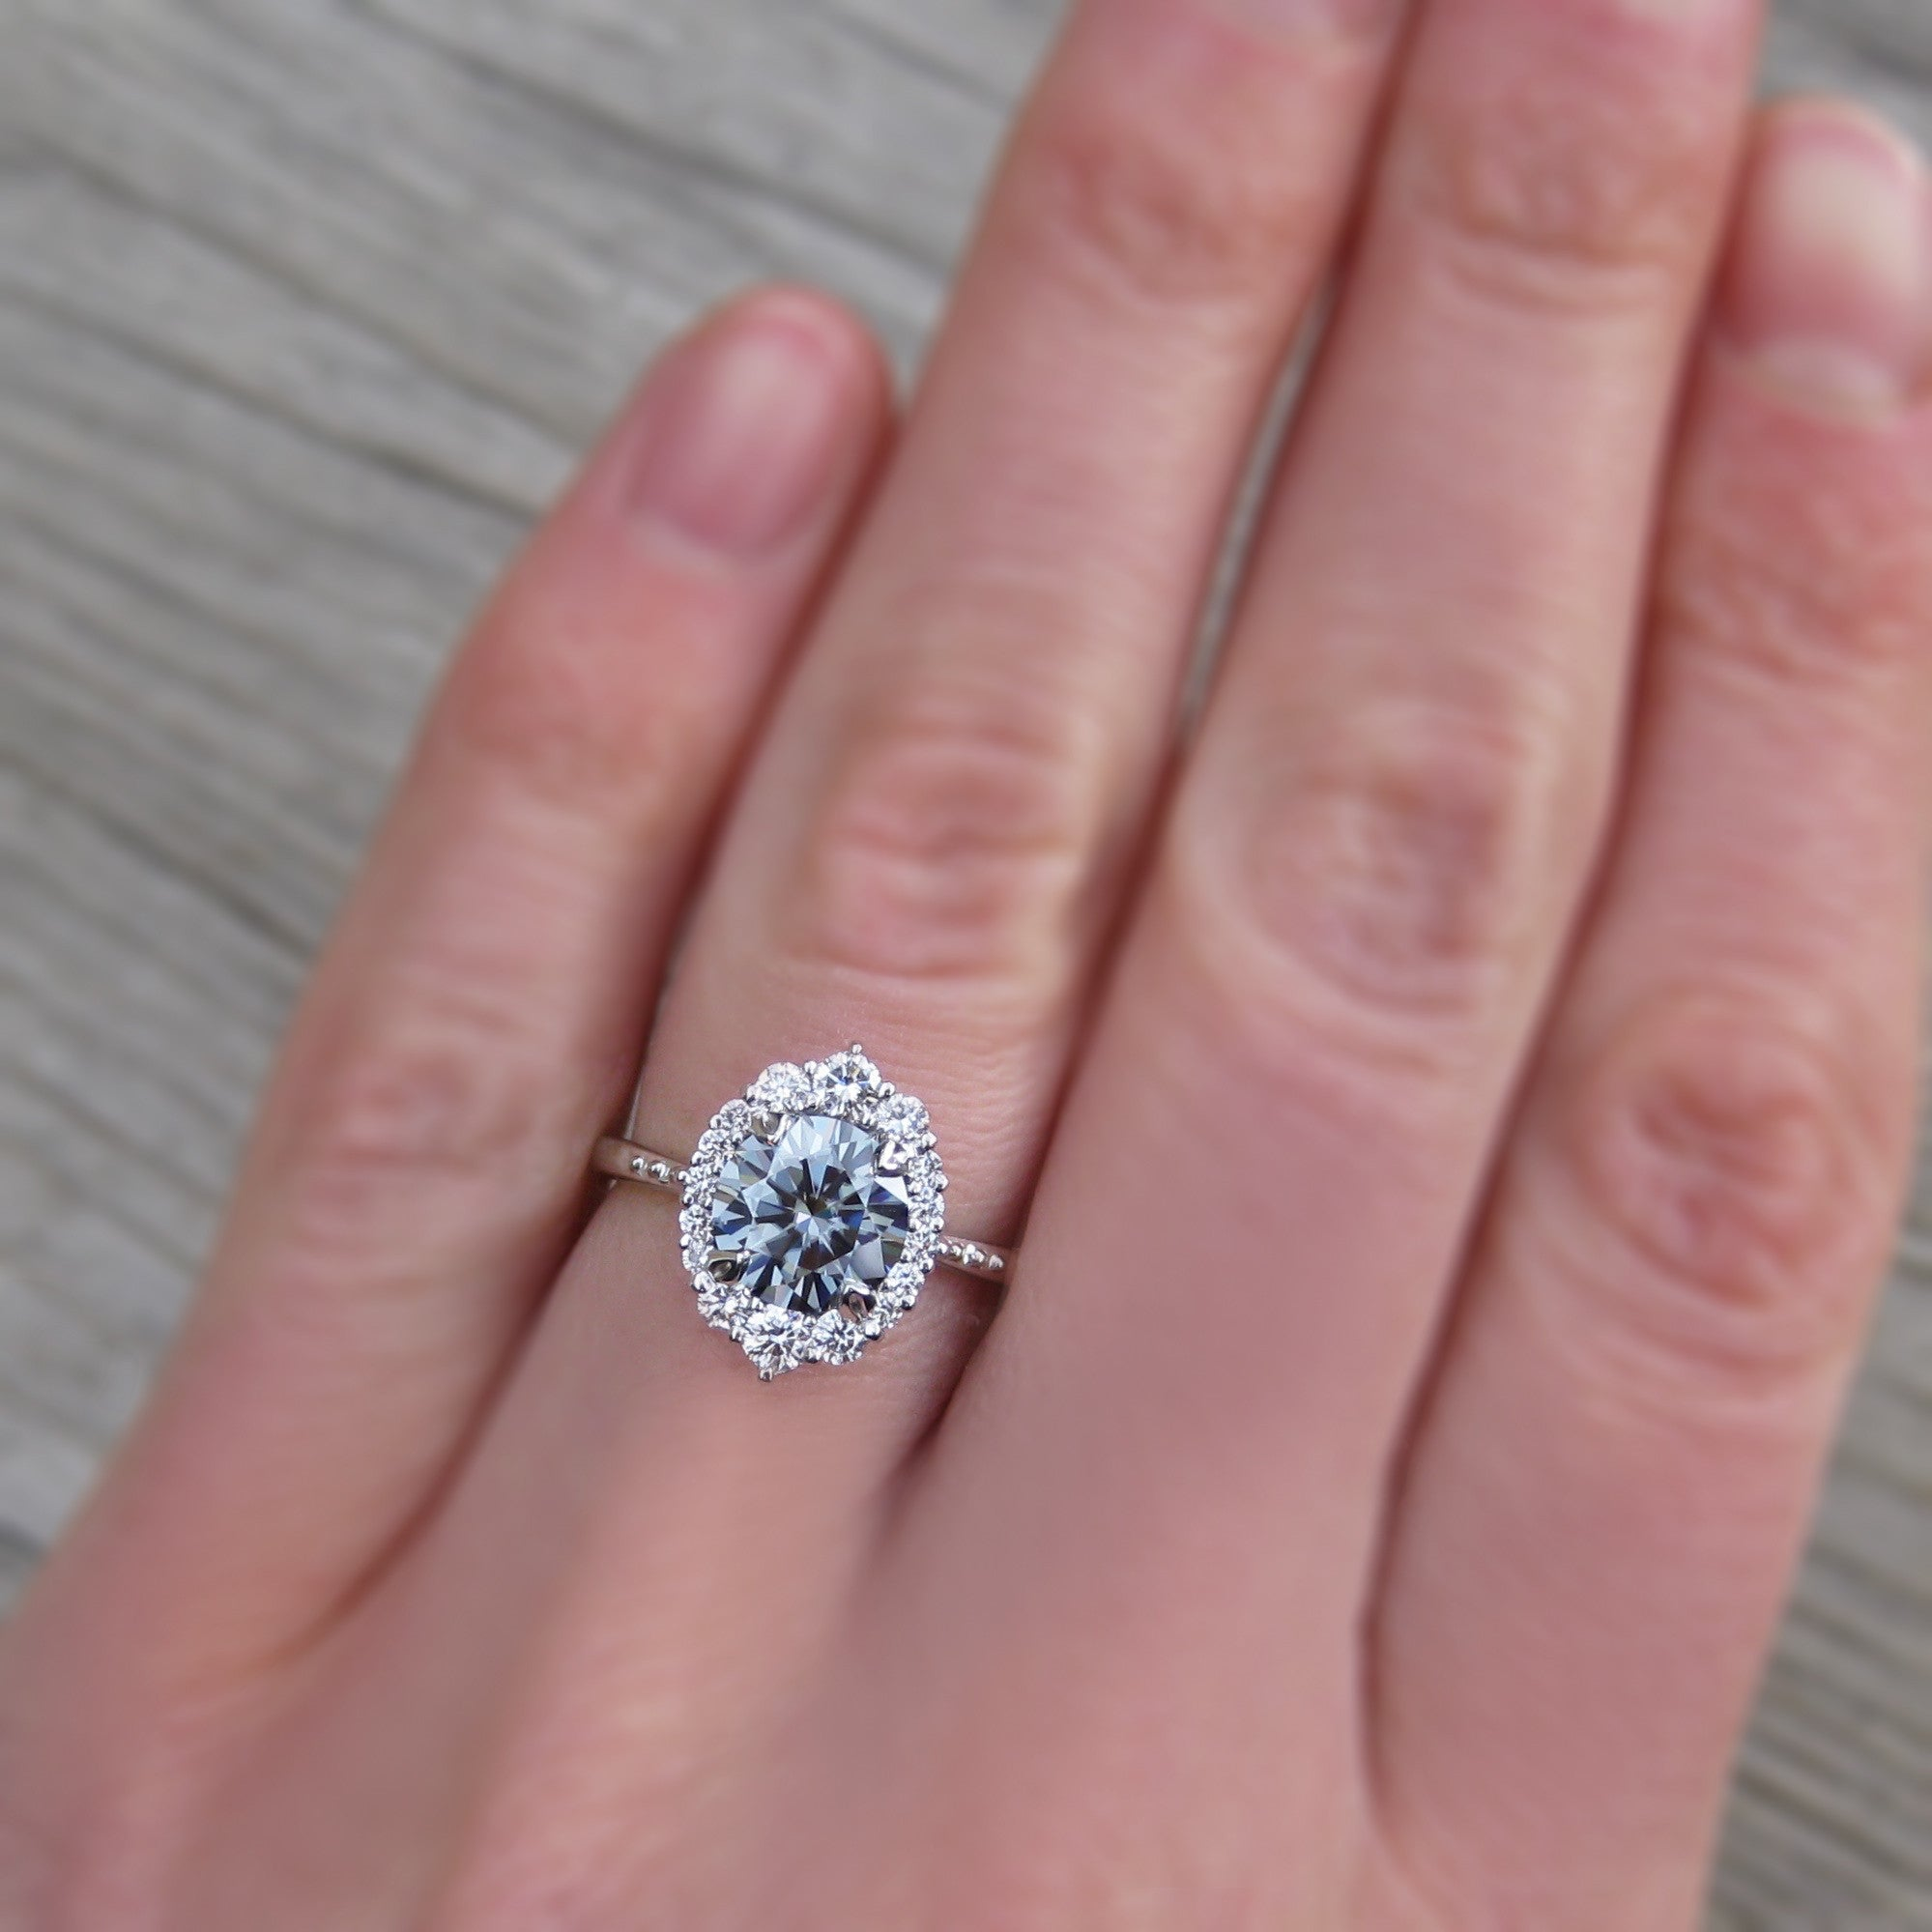 moissanite wedding rings - Wedding Decor Ideas